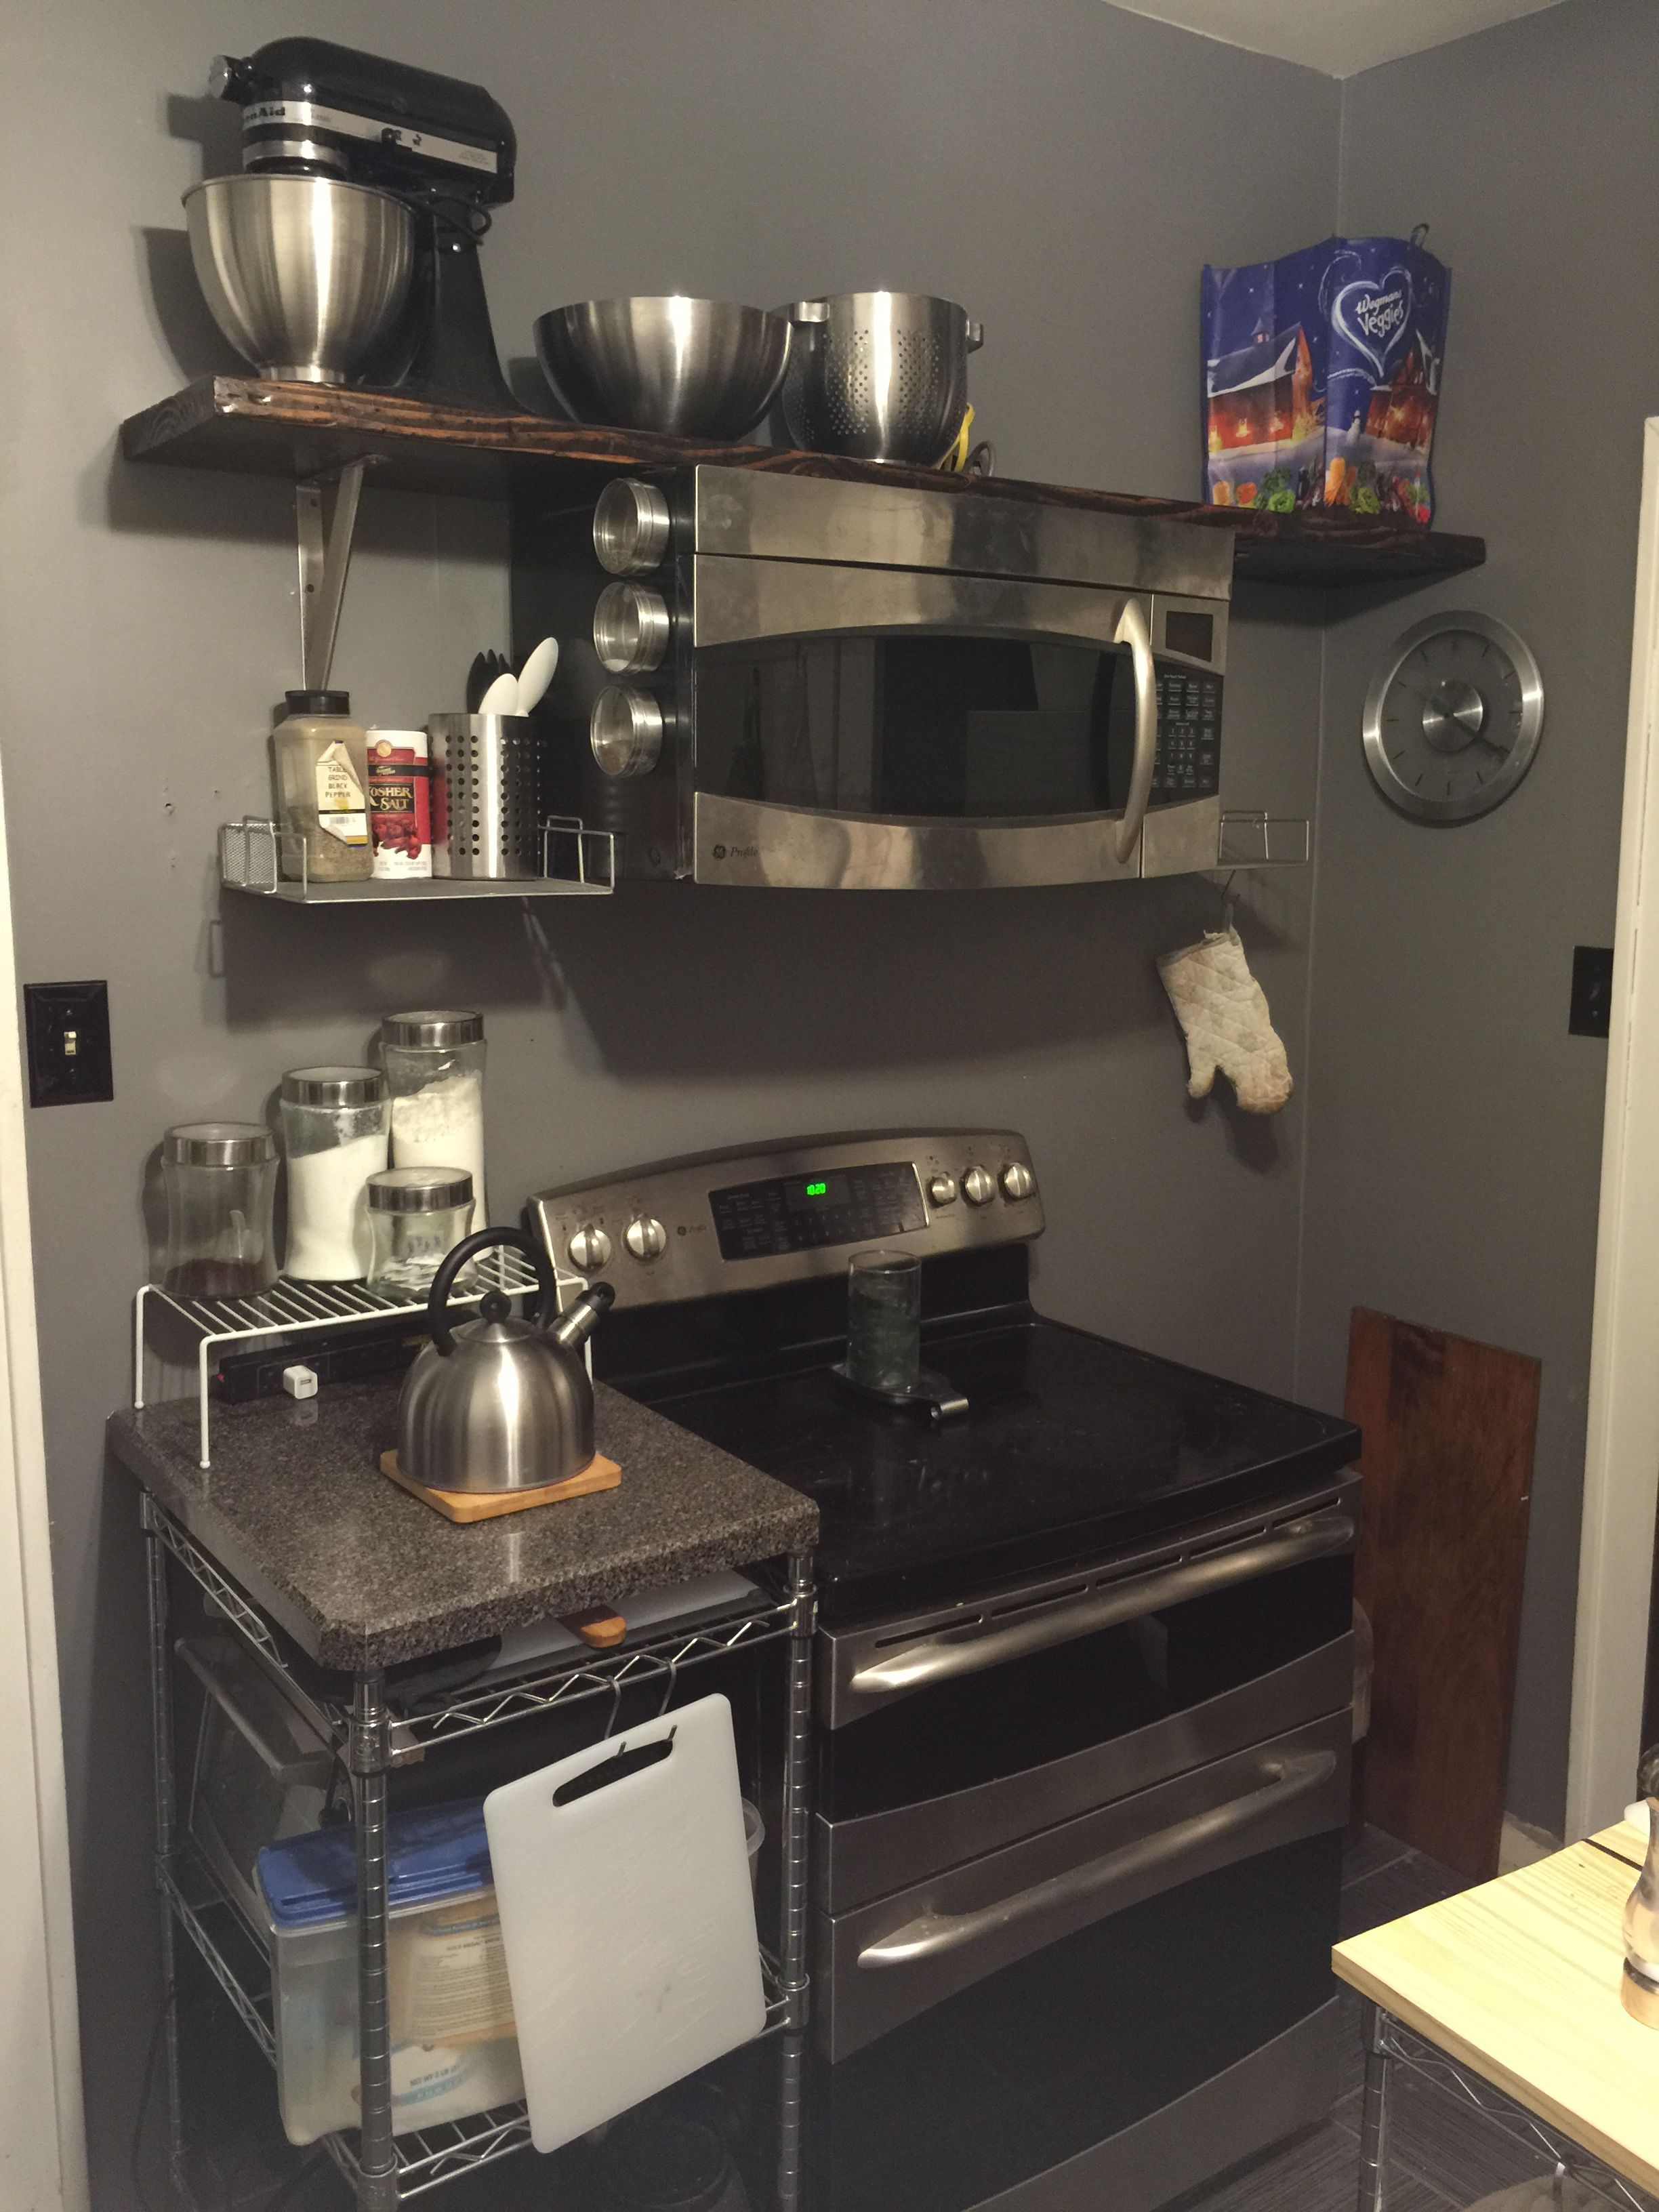 Open Shelf Instead Of Cupboard Above Stove Microwave Mounted To Shelf Metal Floating Shelves Kitchen Microwave Shelf Over Stove Floating Shelves Living Room